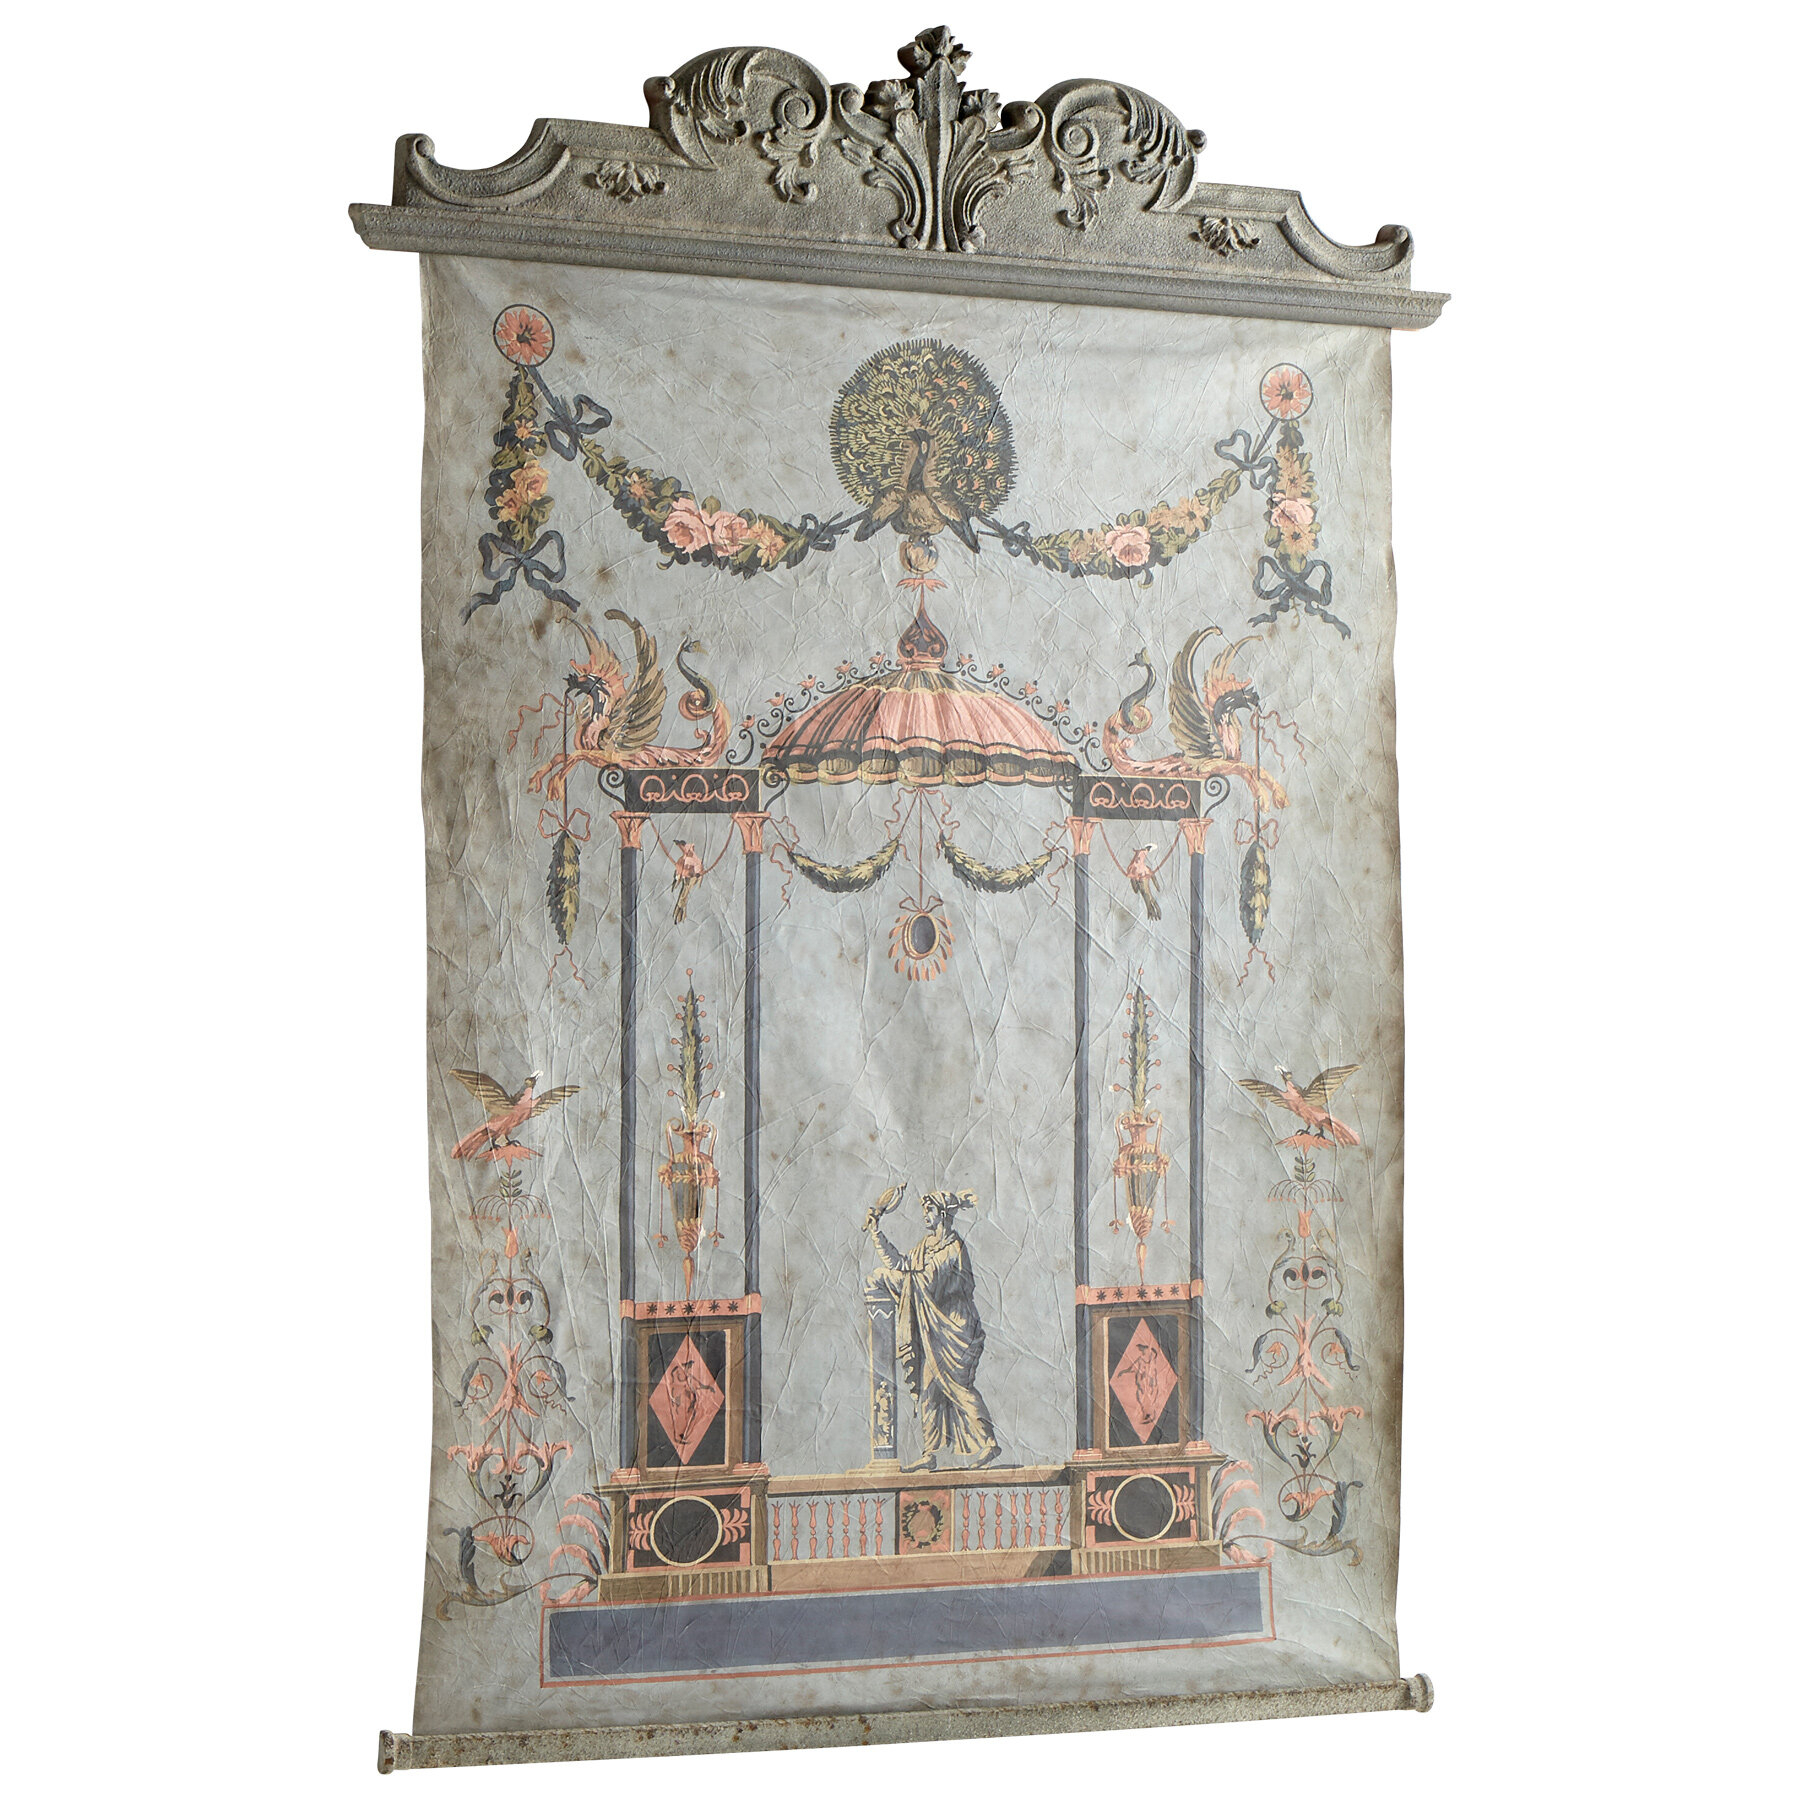 Blended Fabric Ethereal Days Chinoiserie Wall Hanging With Rod Regarding Most Recent Blended Fabric Havenwood Chinoiserie Tapestries Rod Included (View 2 of 20)